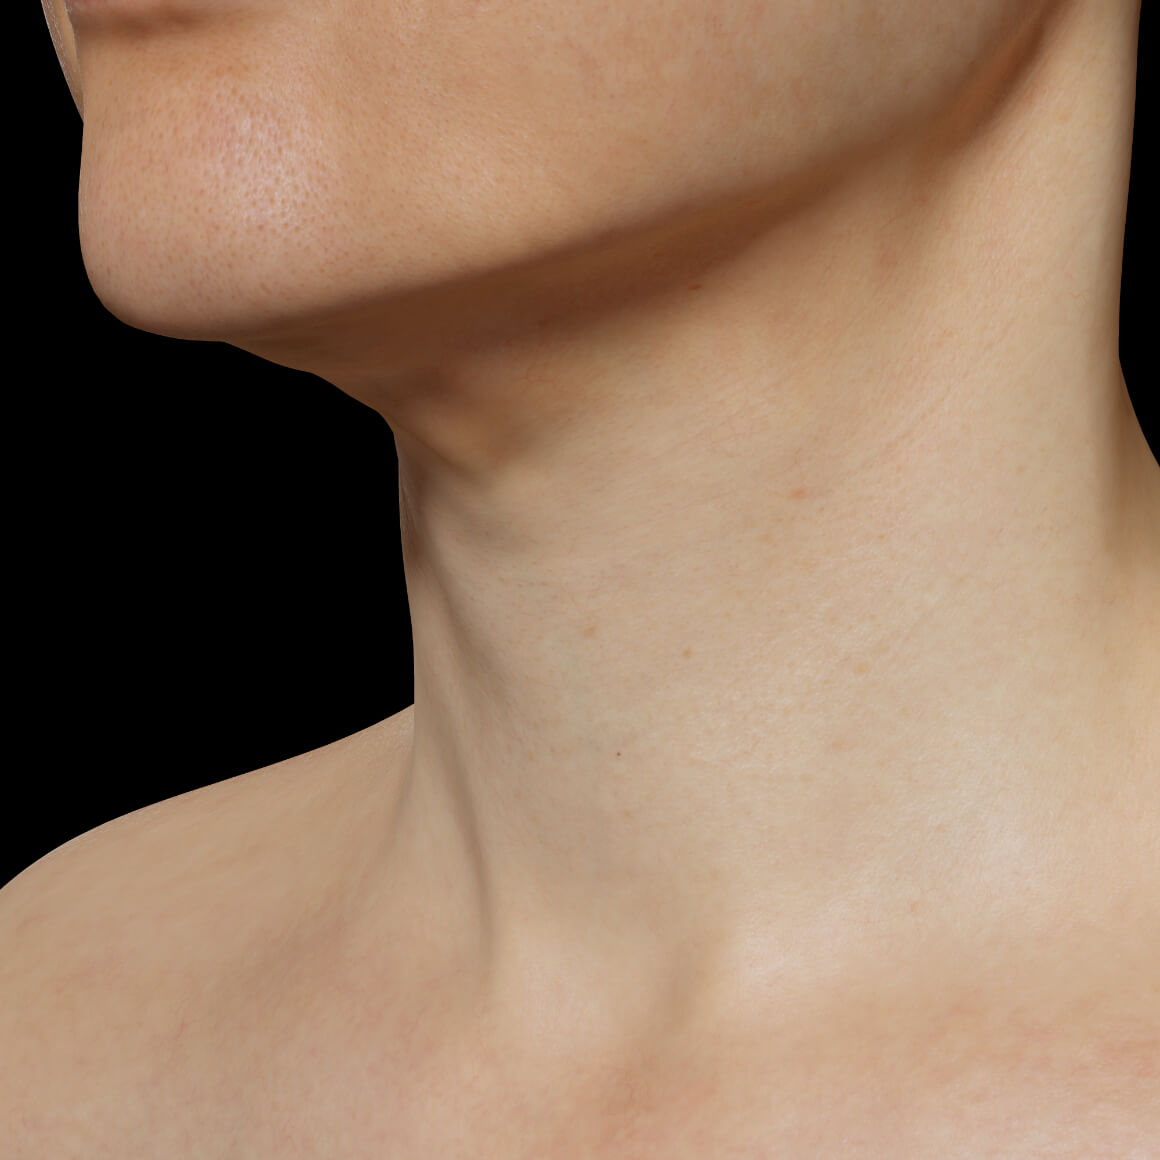 Female patient from Clinique Chloé positioned at an angle after a Profound RF treatment for skin tightening of the neck area